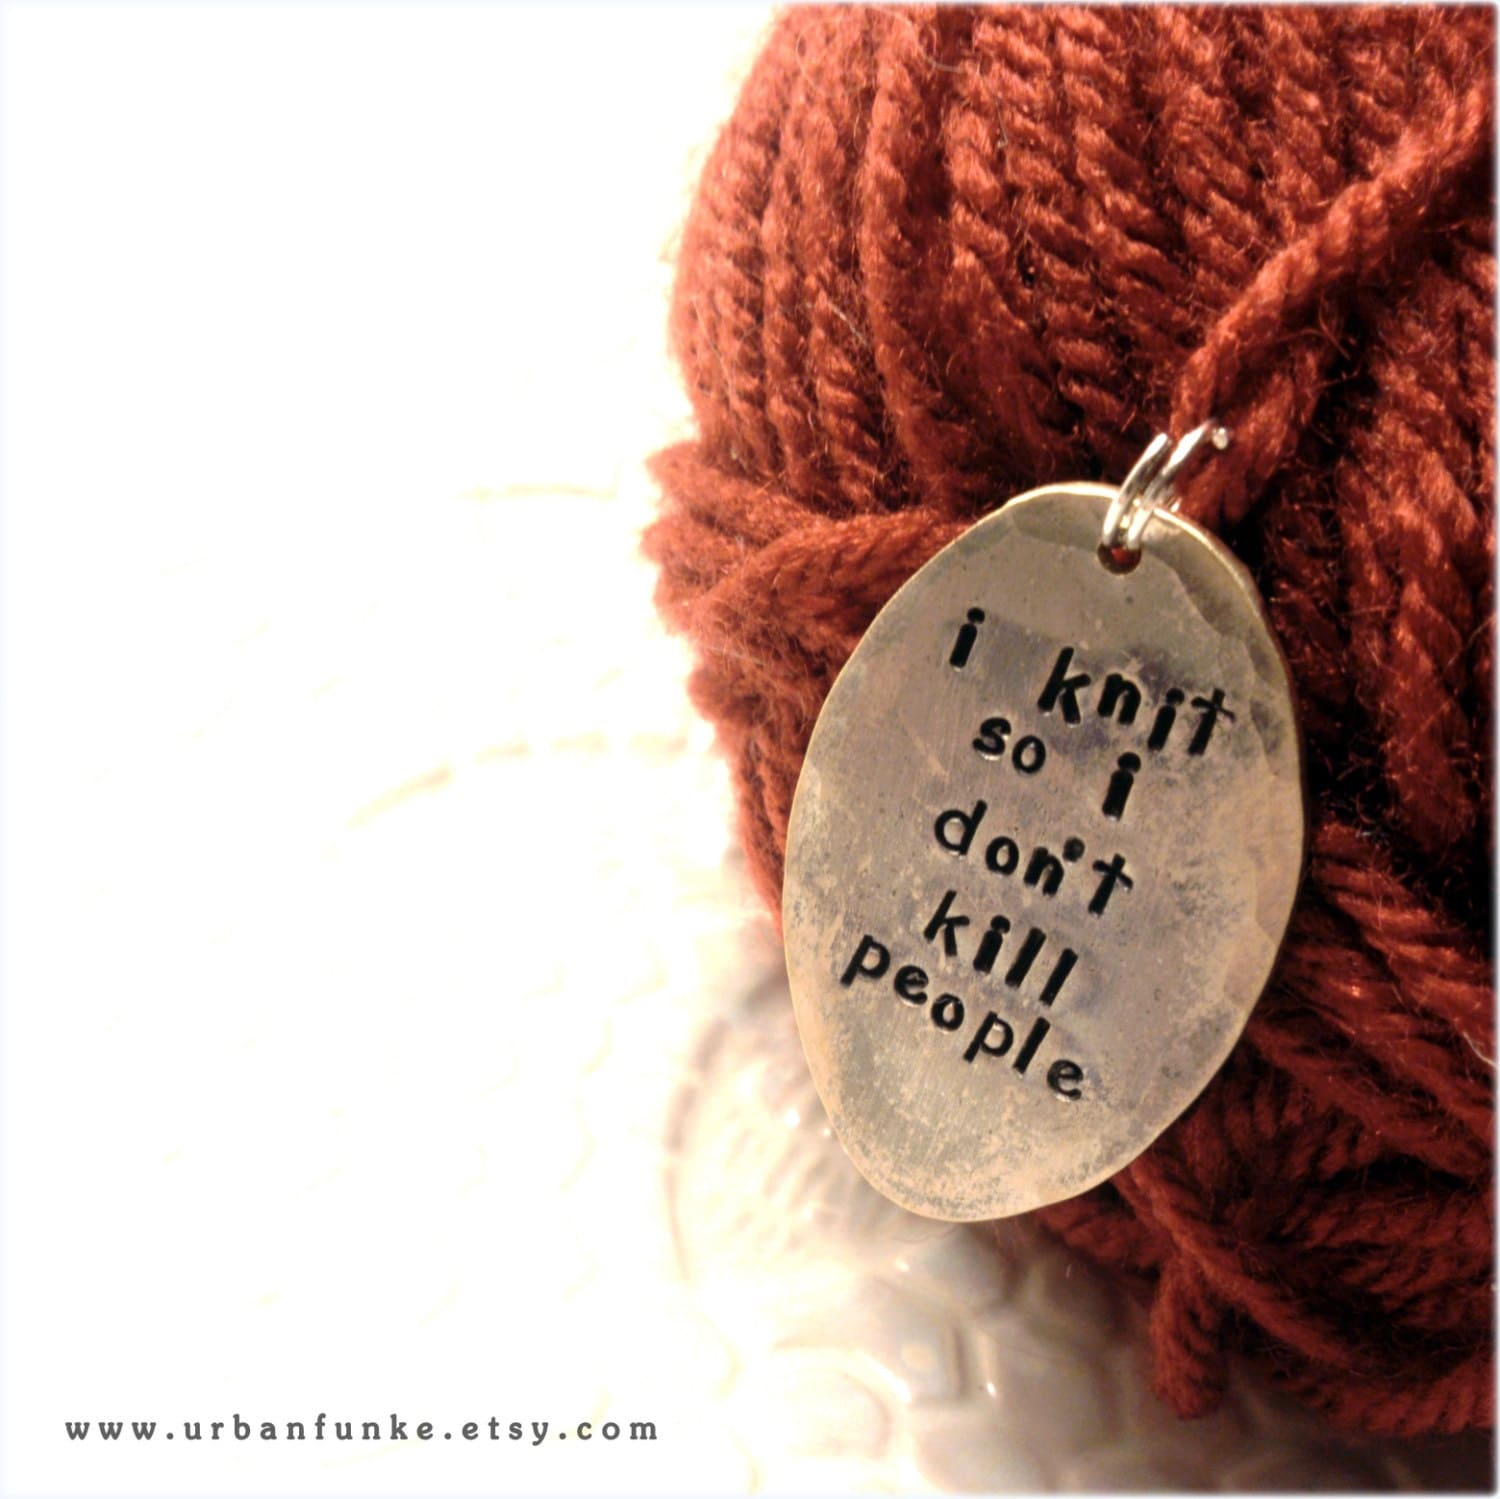 Knitting Markers Etsy : Stitch marker i knit so don t kill people silver